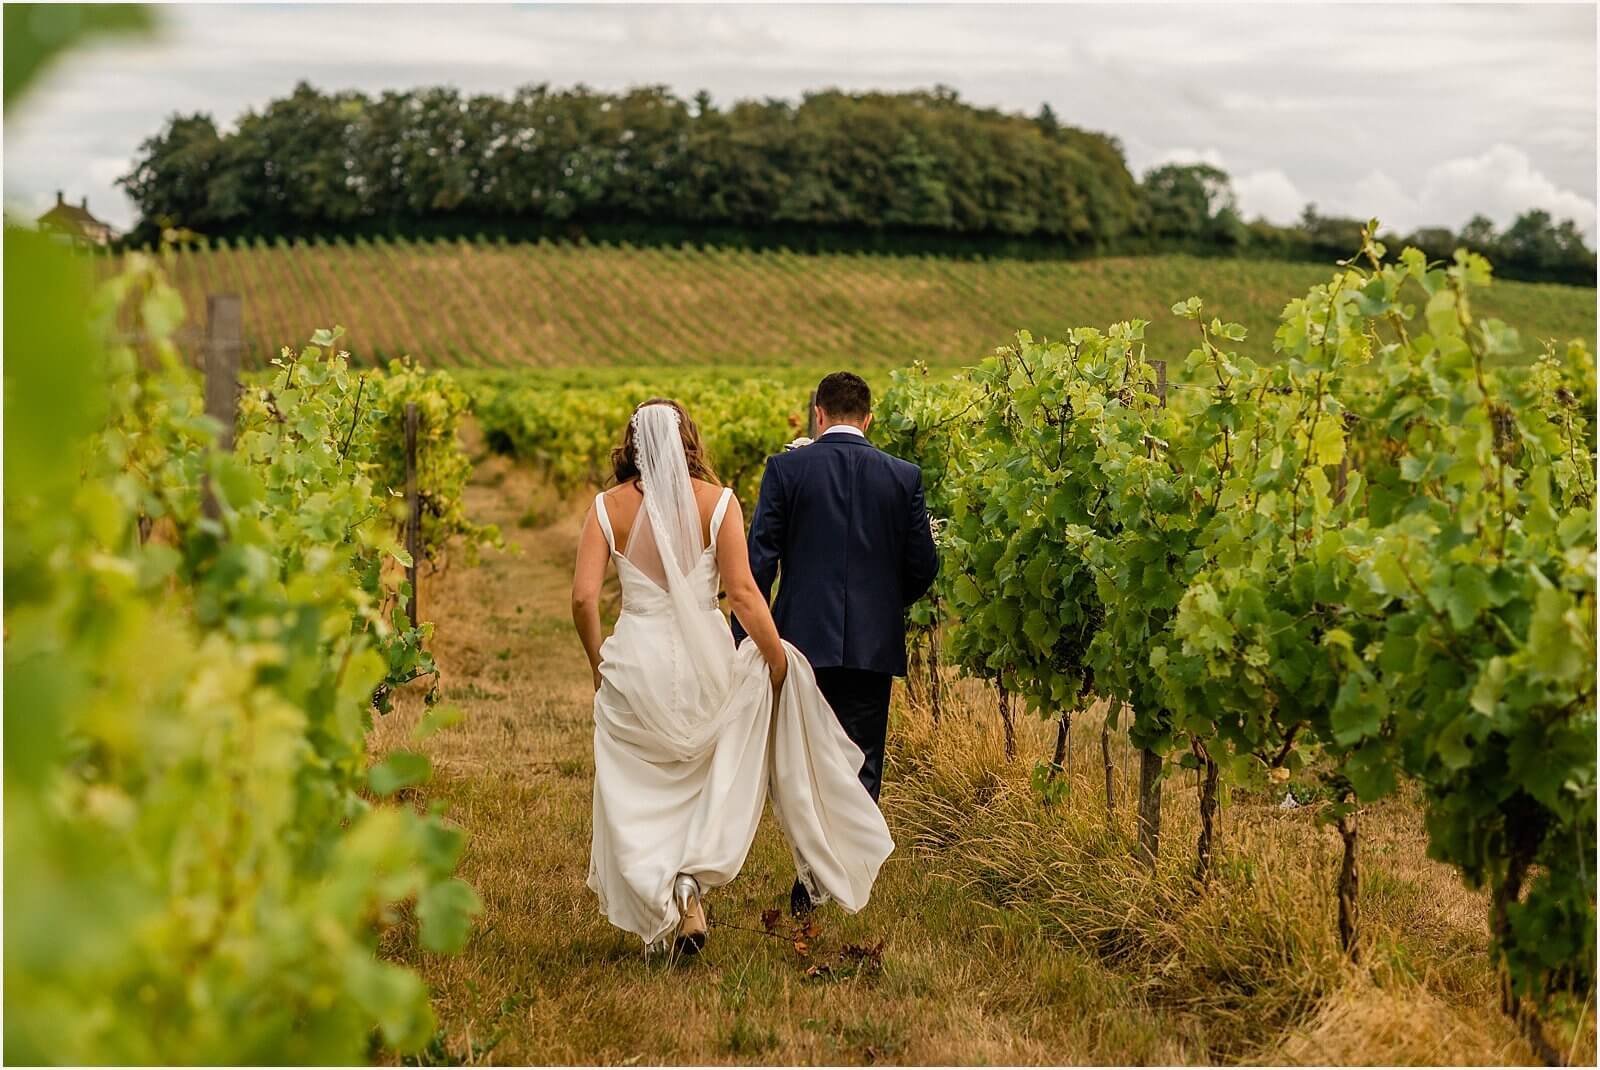 Wedding at Denbies Vineyard - charming wine estate wedding - wedding photography 47